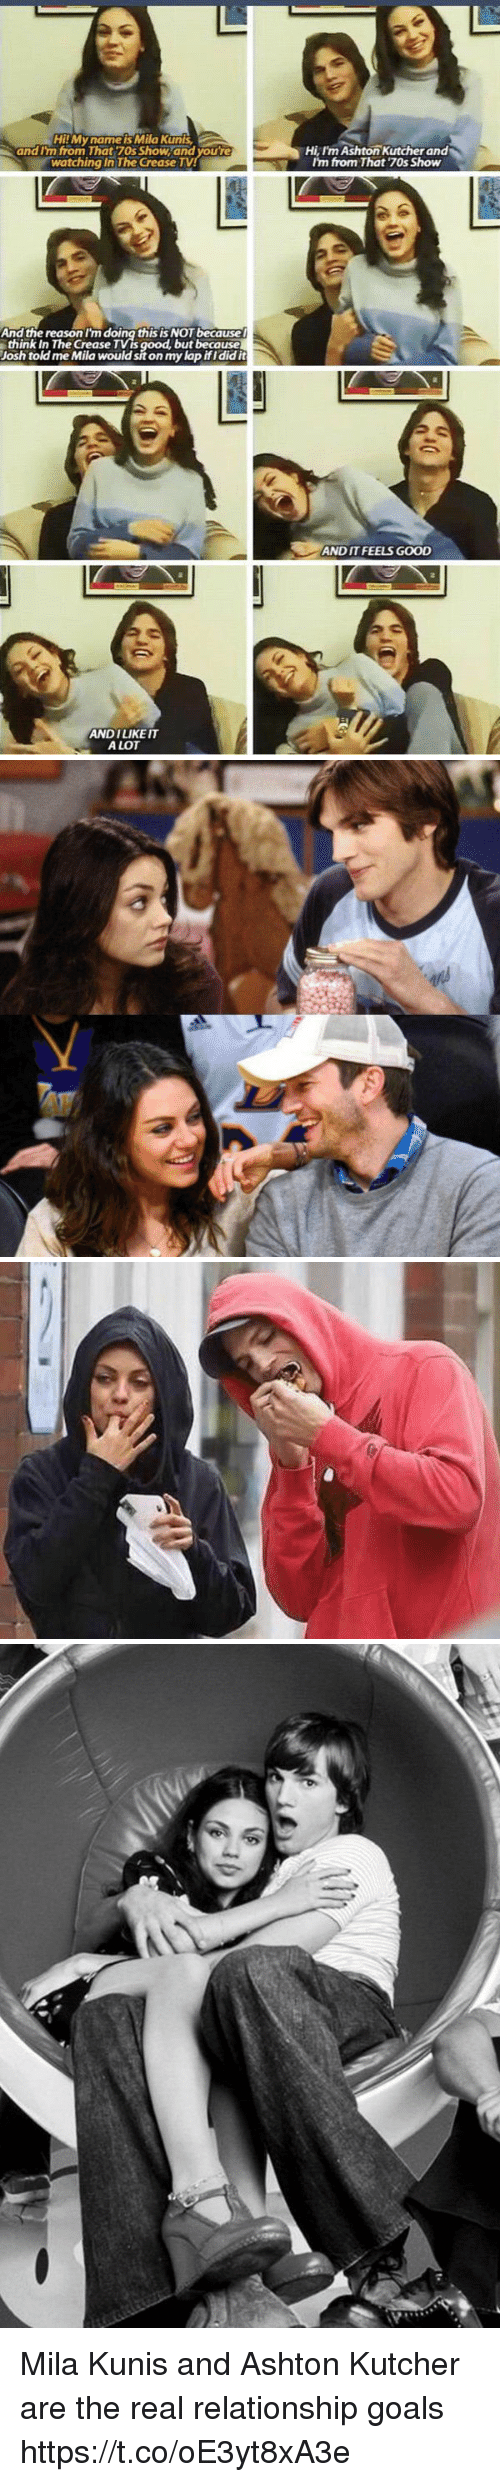 70s Show: HiMyname is Mila Kunts  and Im from That 70s Show and youre  Hi, I'm Ashton Kutcher and  Im from That 70s Show  watching In The Crease  And the reason I'm doing this is NOT because  think In The Crease TV is good, but because  Josh told me Mila would sit on my lap ifidid it  AND IT FEELS GOOD  ANDILIKE IT  A LOT Mila Kunis and Ashton Kutcher are the real relationship goals https://t.co/oE3yt8xA3e